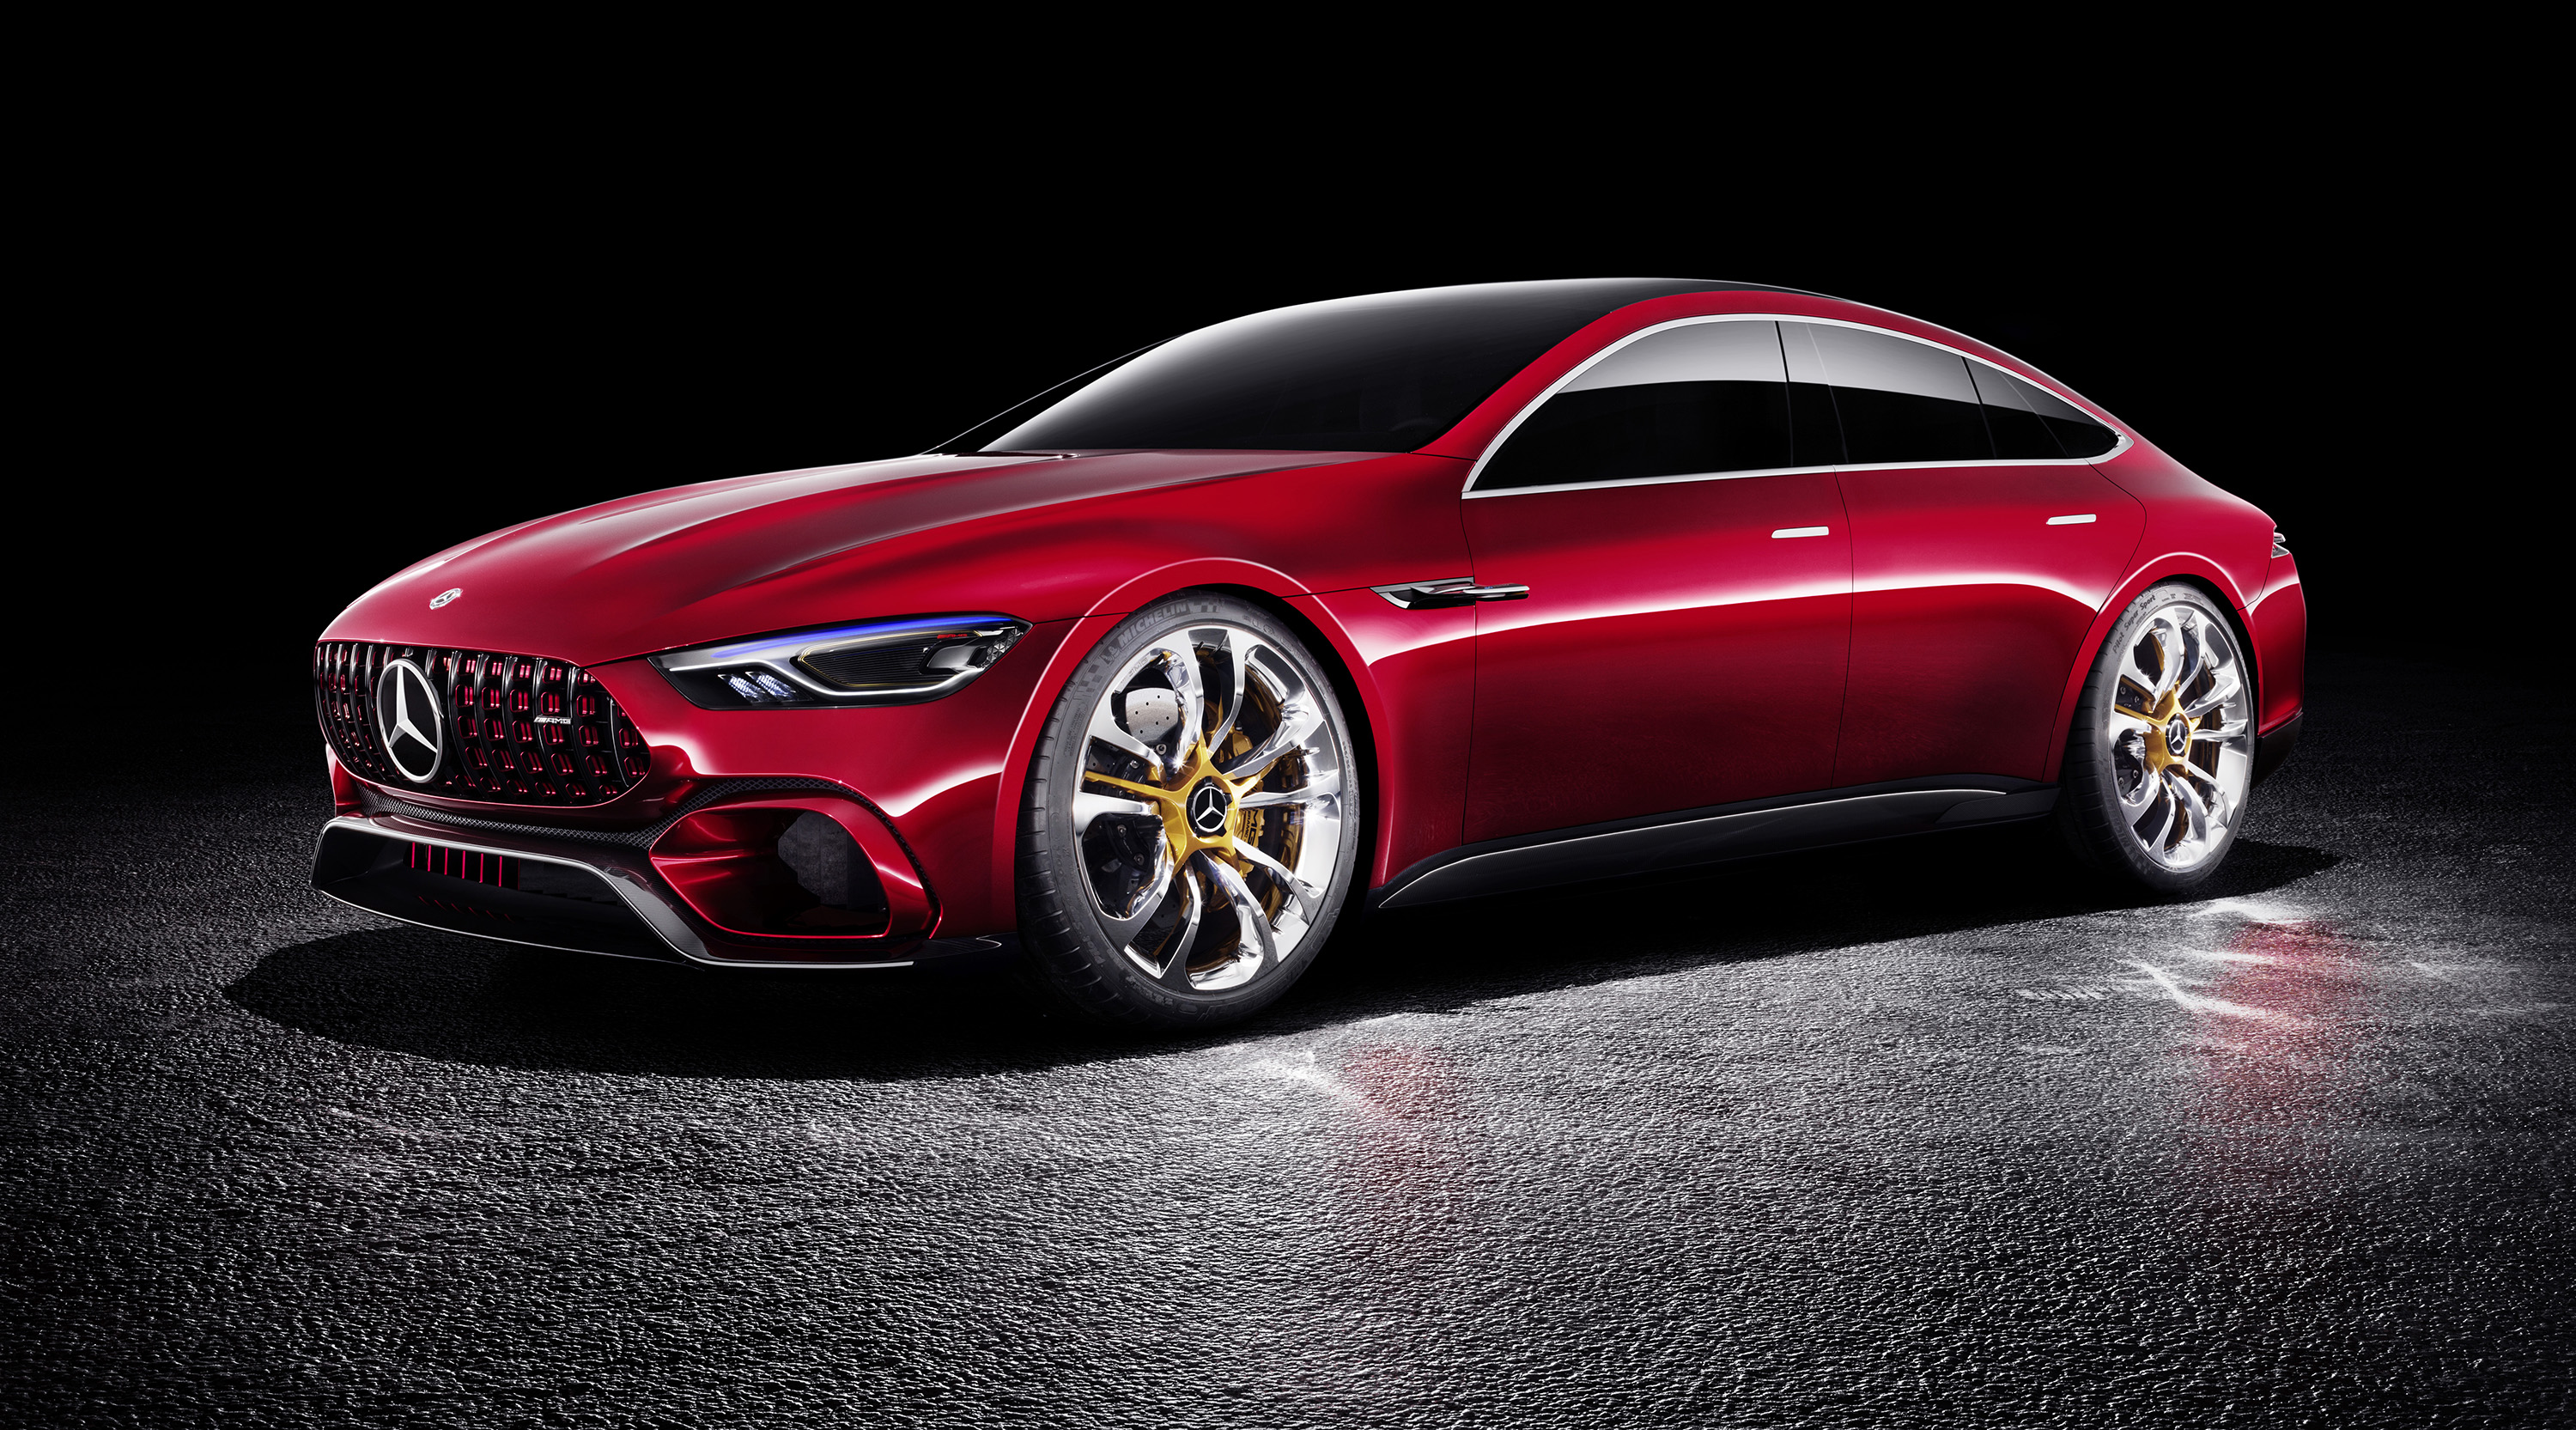 Mercedes amg gt four door concept revealed photos for Mercedes benz amg gt coupe price